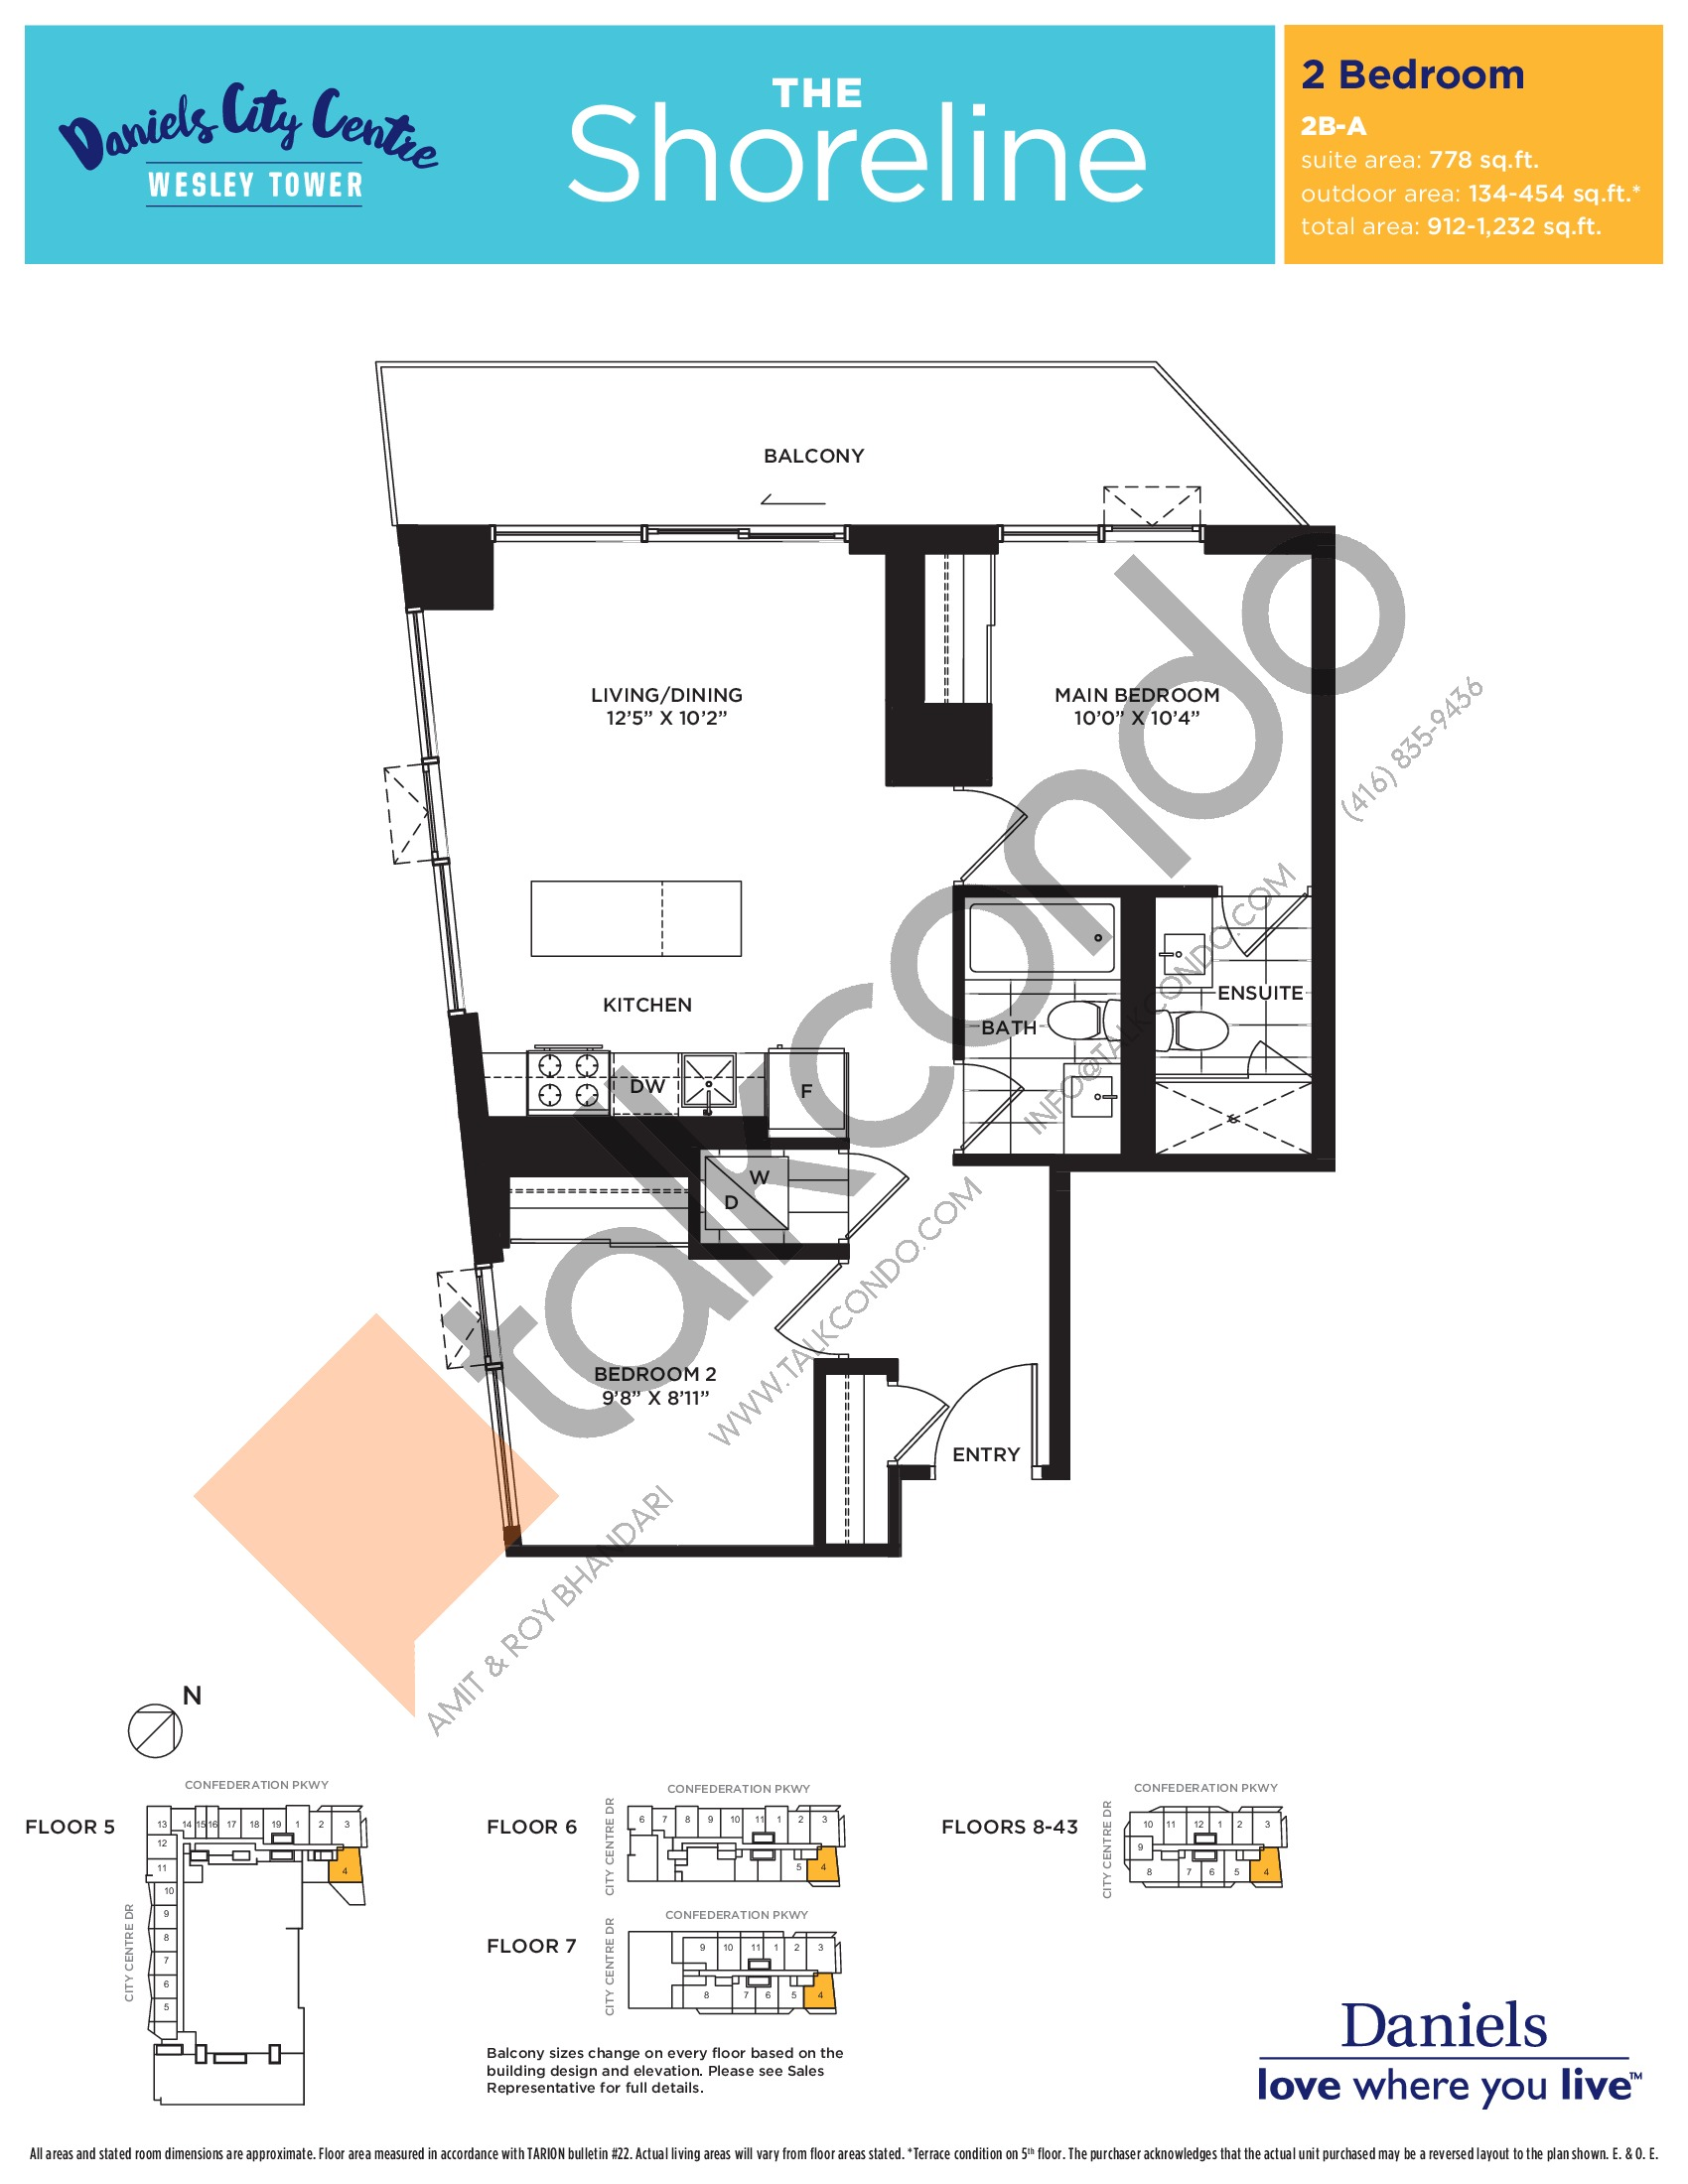 The Shoreline Floor Plan at The Wesley Tower at Daniels City Centre Condos - 778 sq.ft